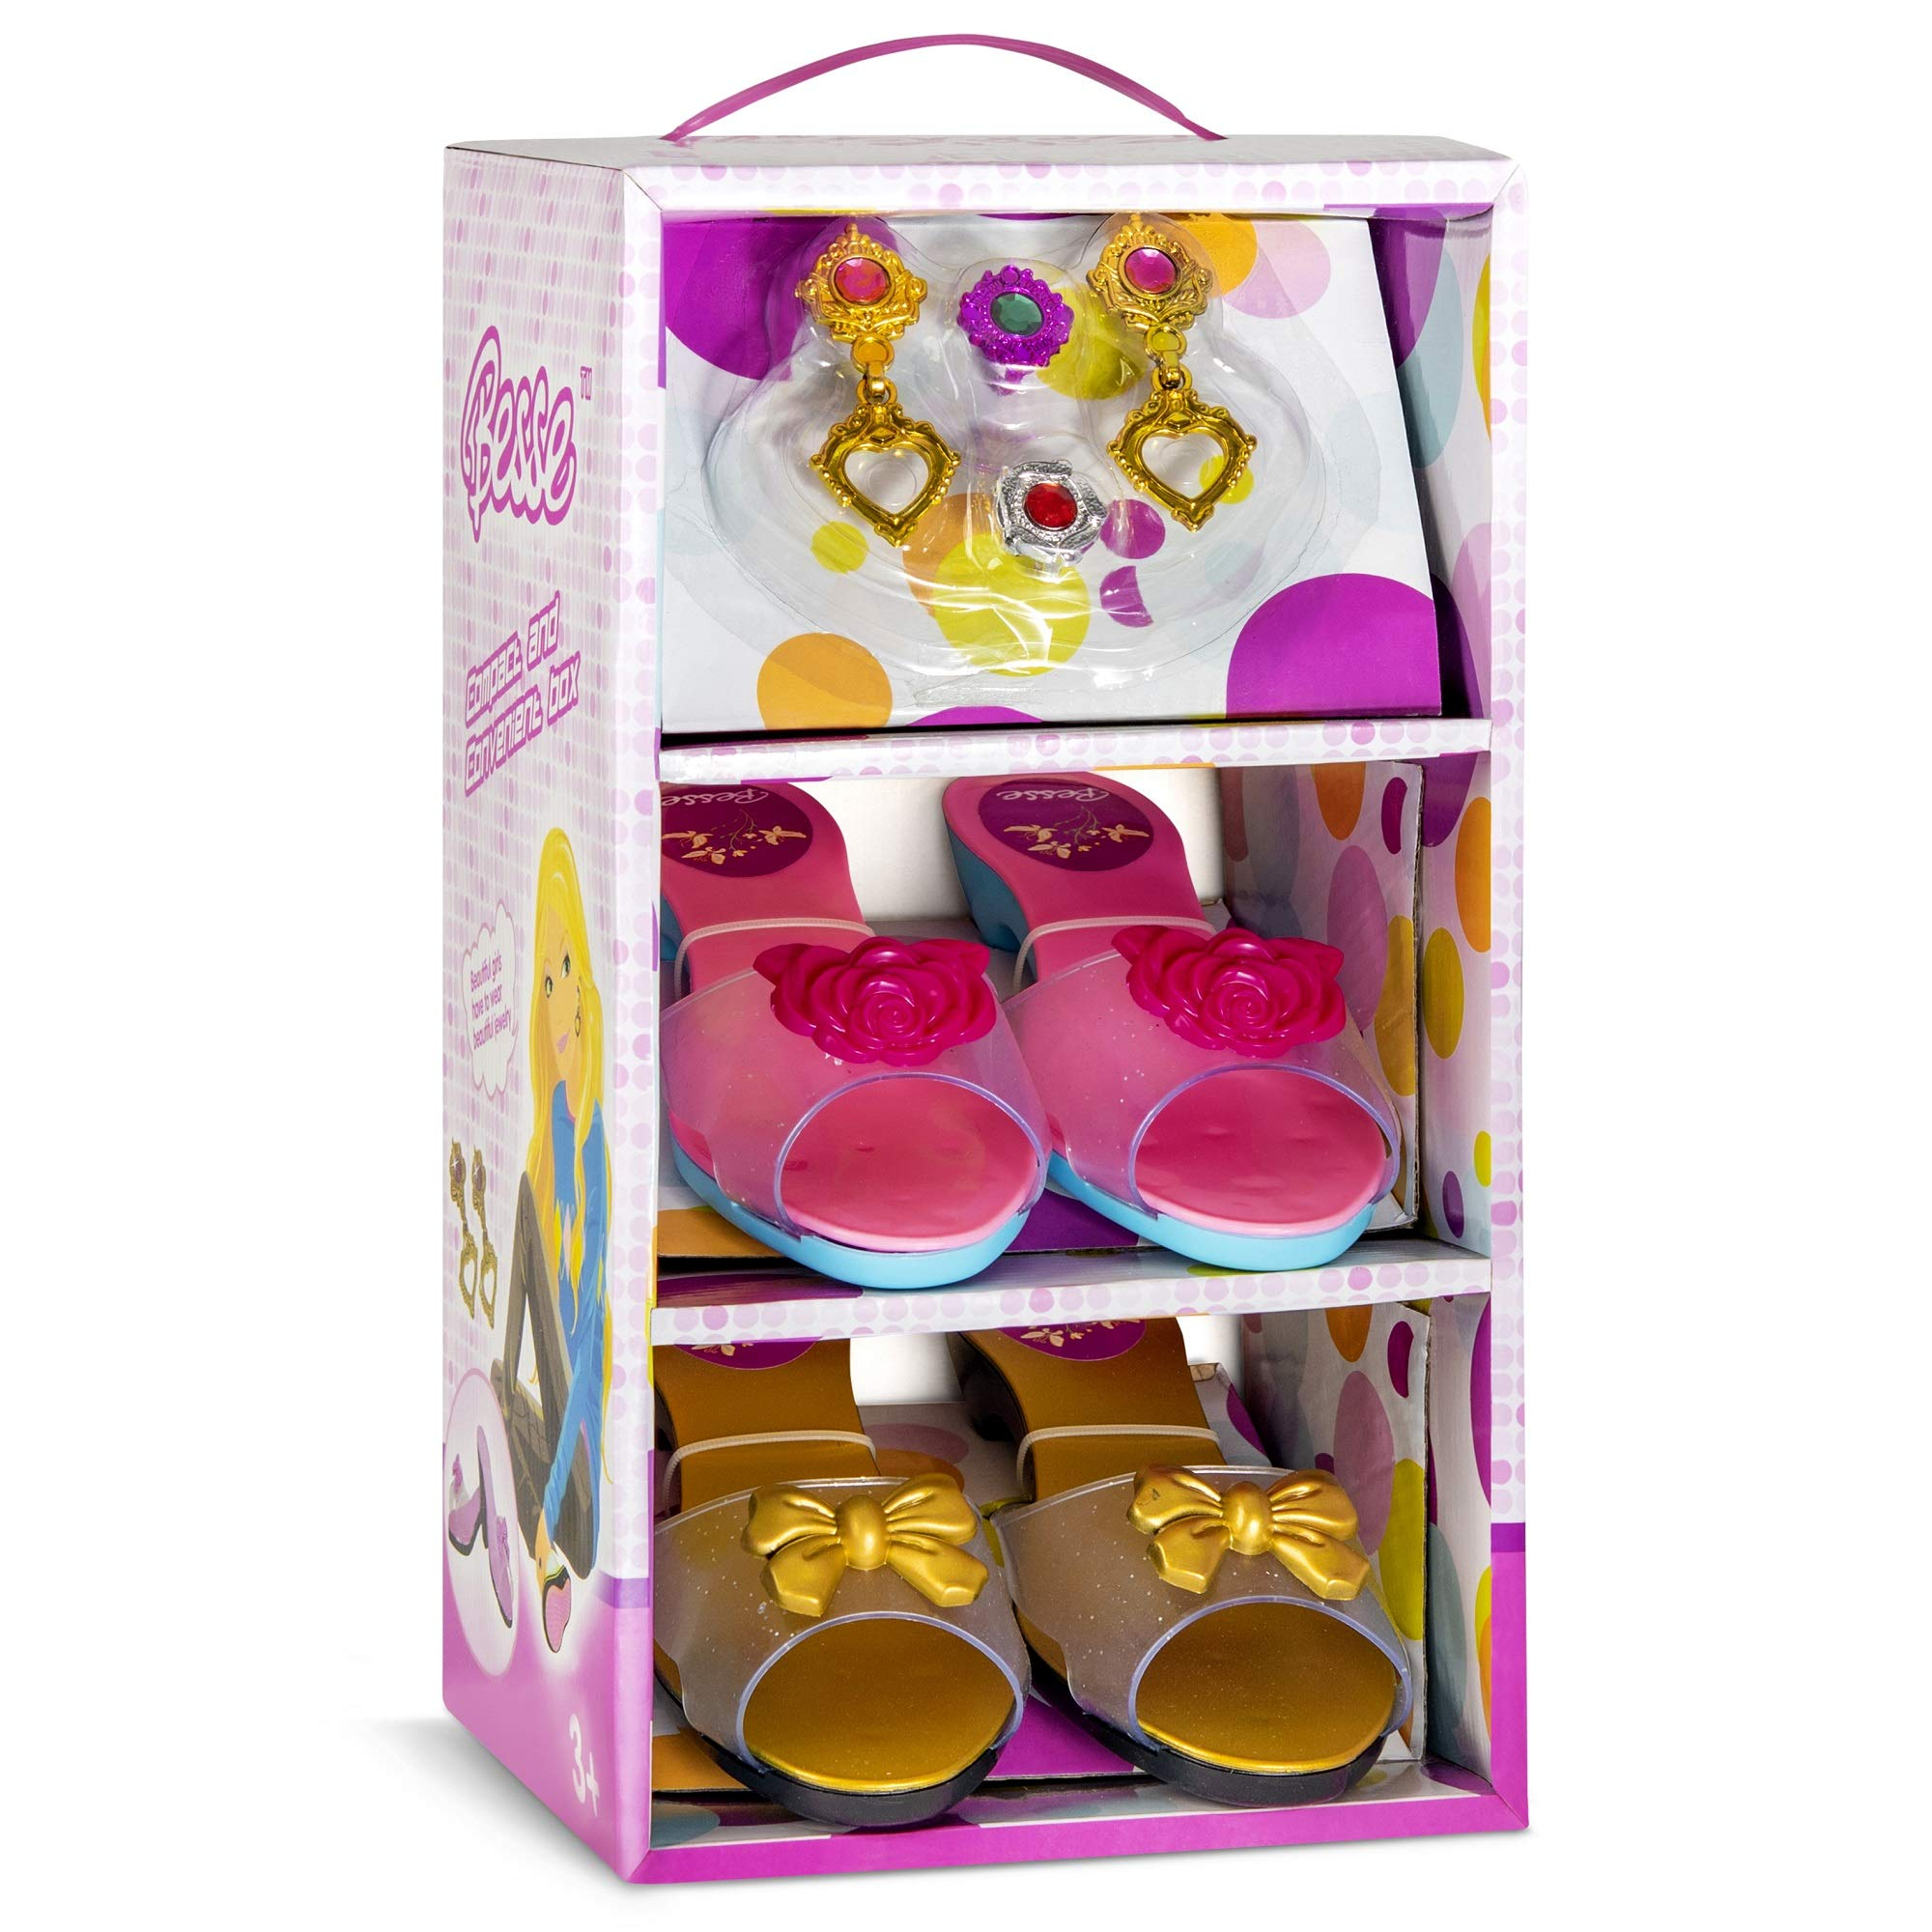 JaxoJoy Shoes and Jewelry Boutique - Little Girl Princess Play Gift Set with 2 Pairs of Shoes, 2 Rings & 1 Pair of Earrings - Great for Dress Up & Group Play - Recommended Ages 3+